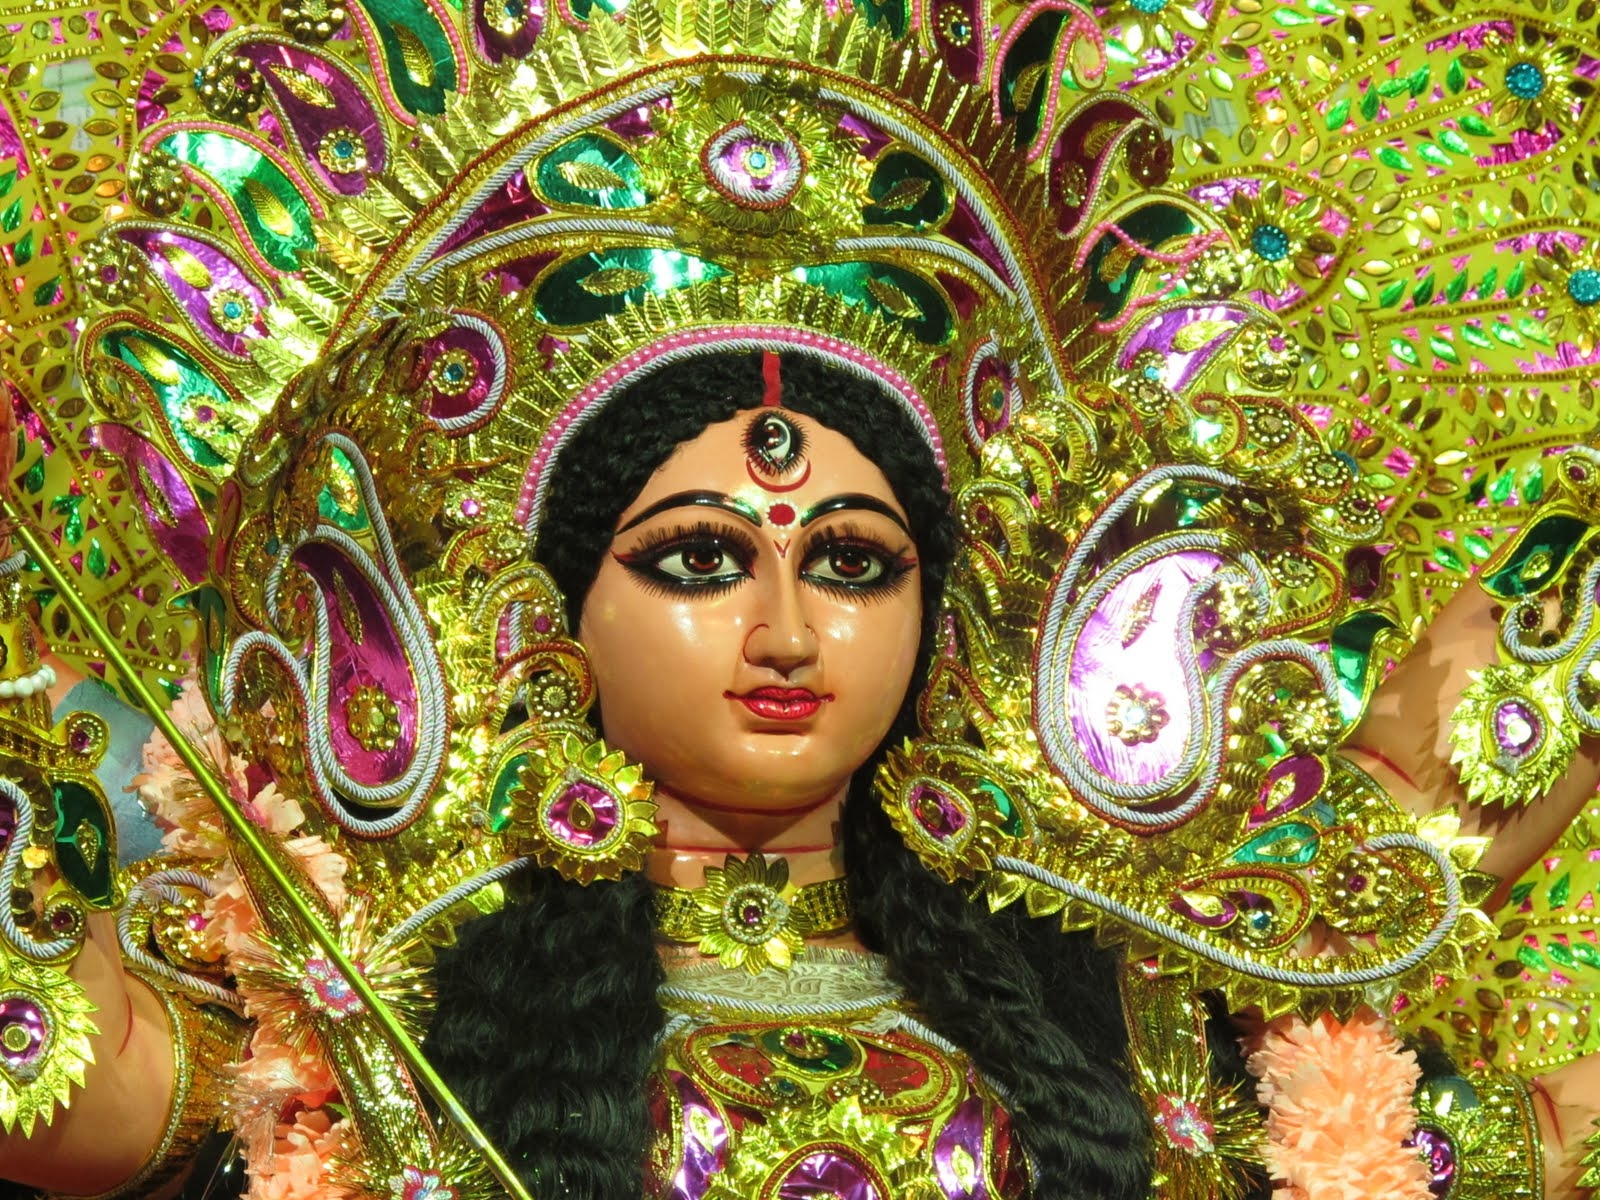 Maa Durga Animated Wallpaper For Desktop Unique Durga Face